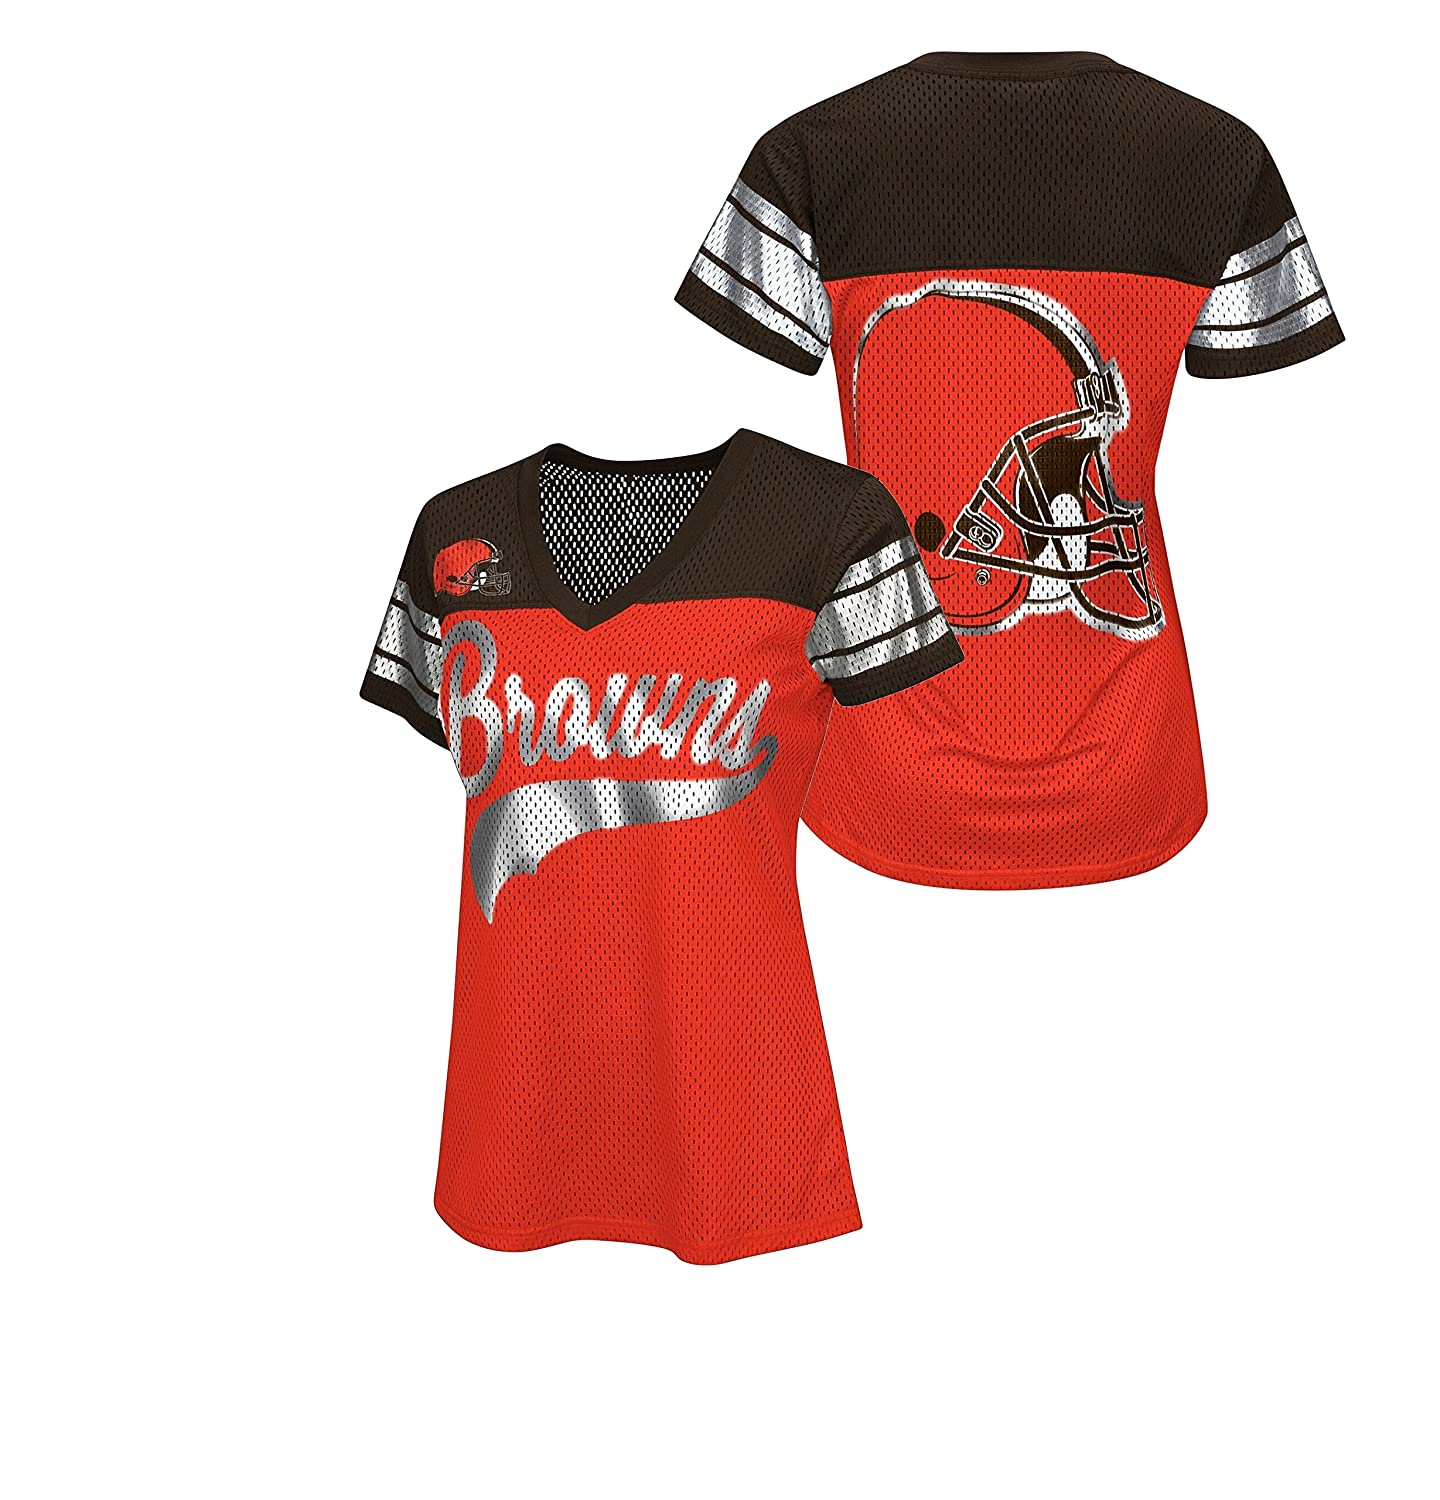 low priced 51f93 70daf G-III Sports Cleveland Browns Women's Game Winning Drive Jersey Style Shirt